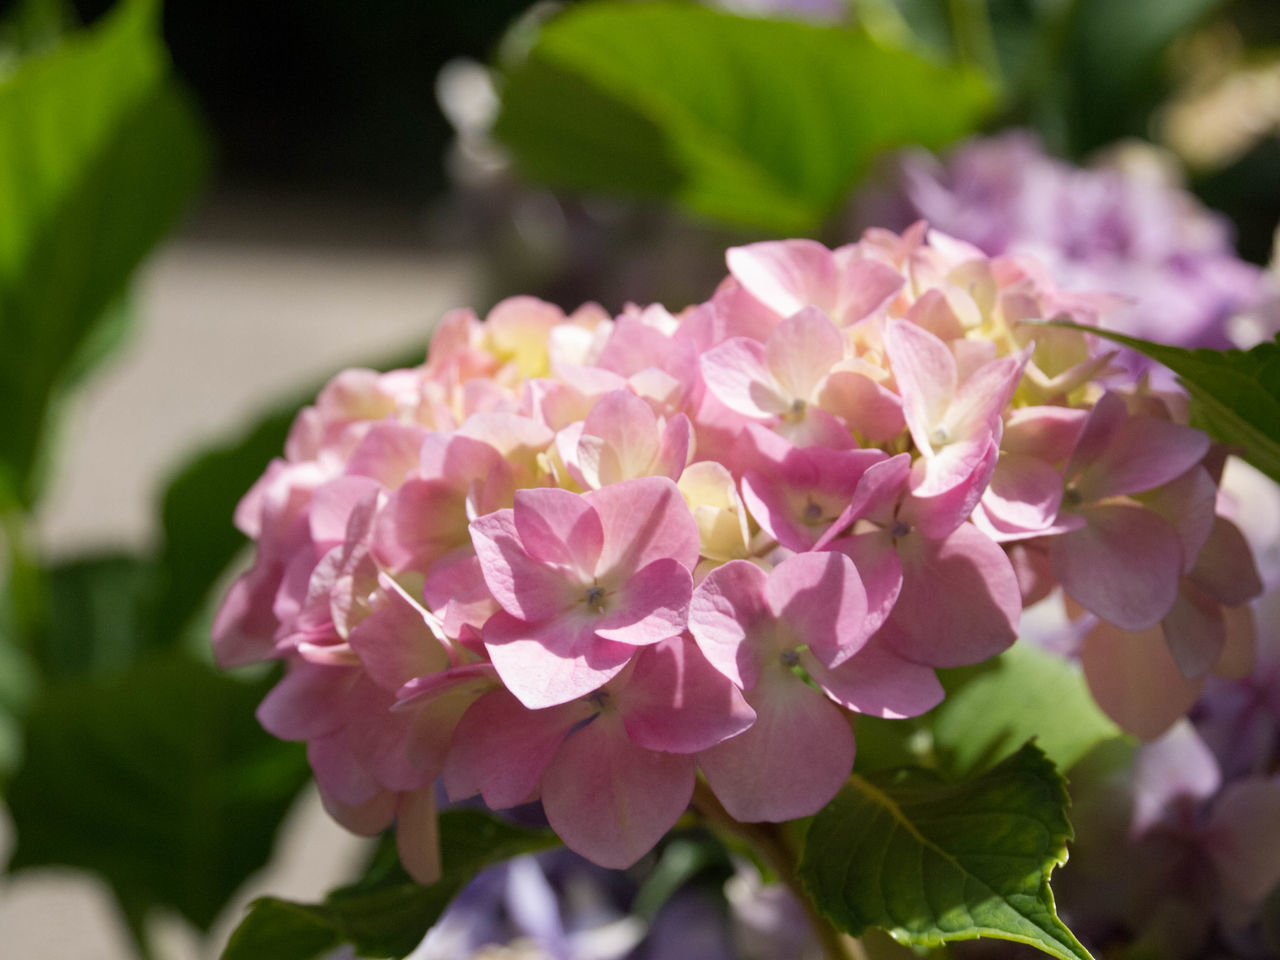 Beauty In Nature Blooming Close-up Day Flower Flower Head Focus On Foreground Fragility Freshness Growth Hydrangea Leaf Nature No People Outdoors Petal Pink Color Plant Rhododendron